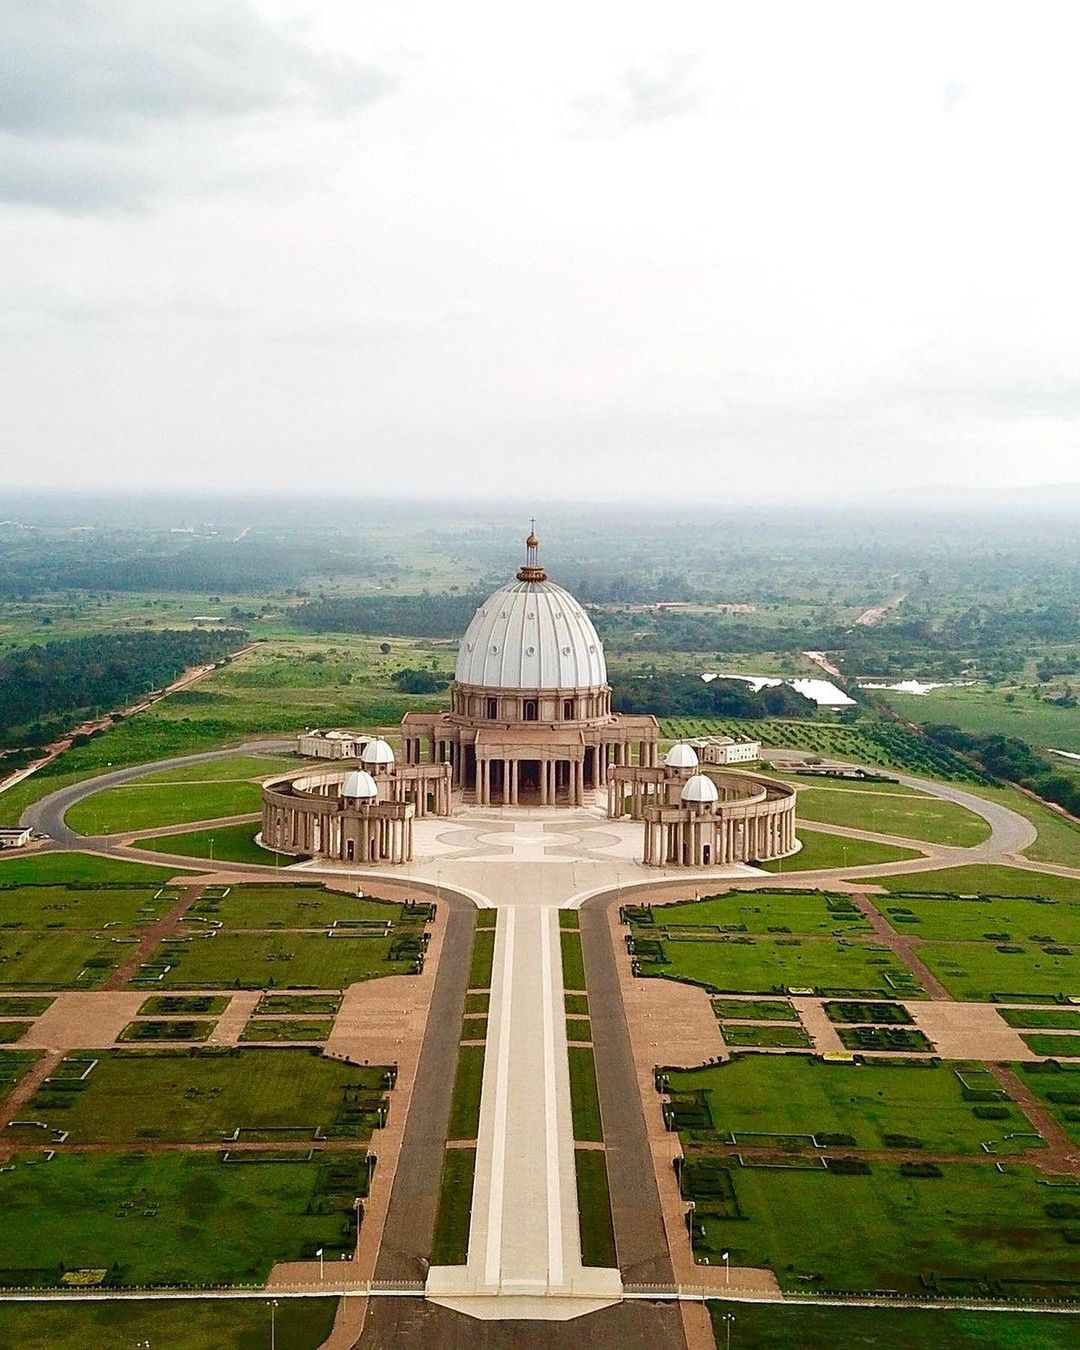 The largest church in the world